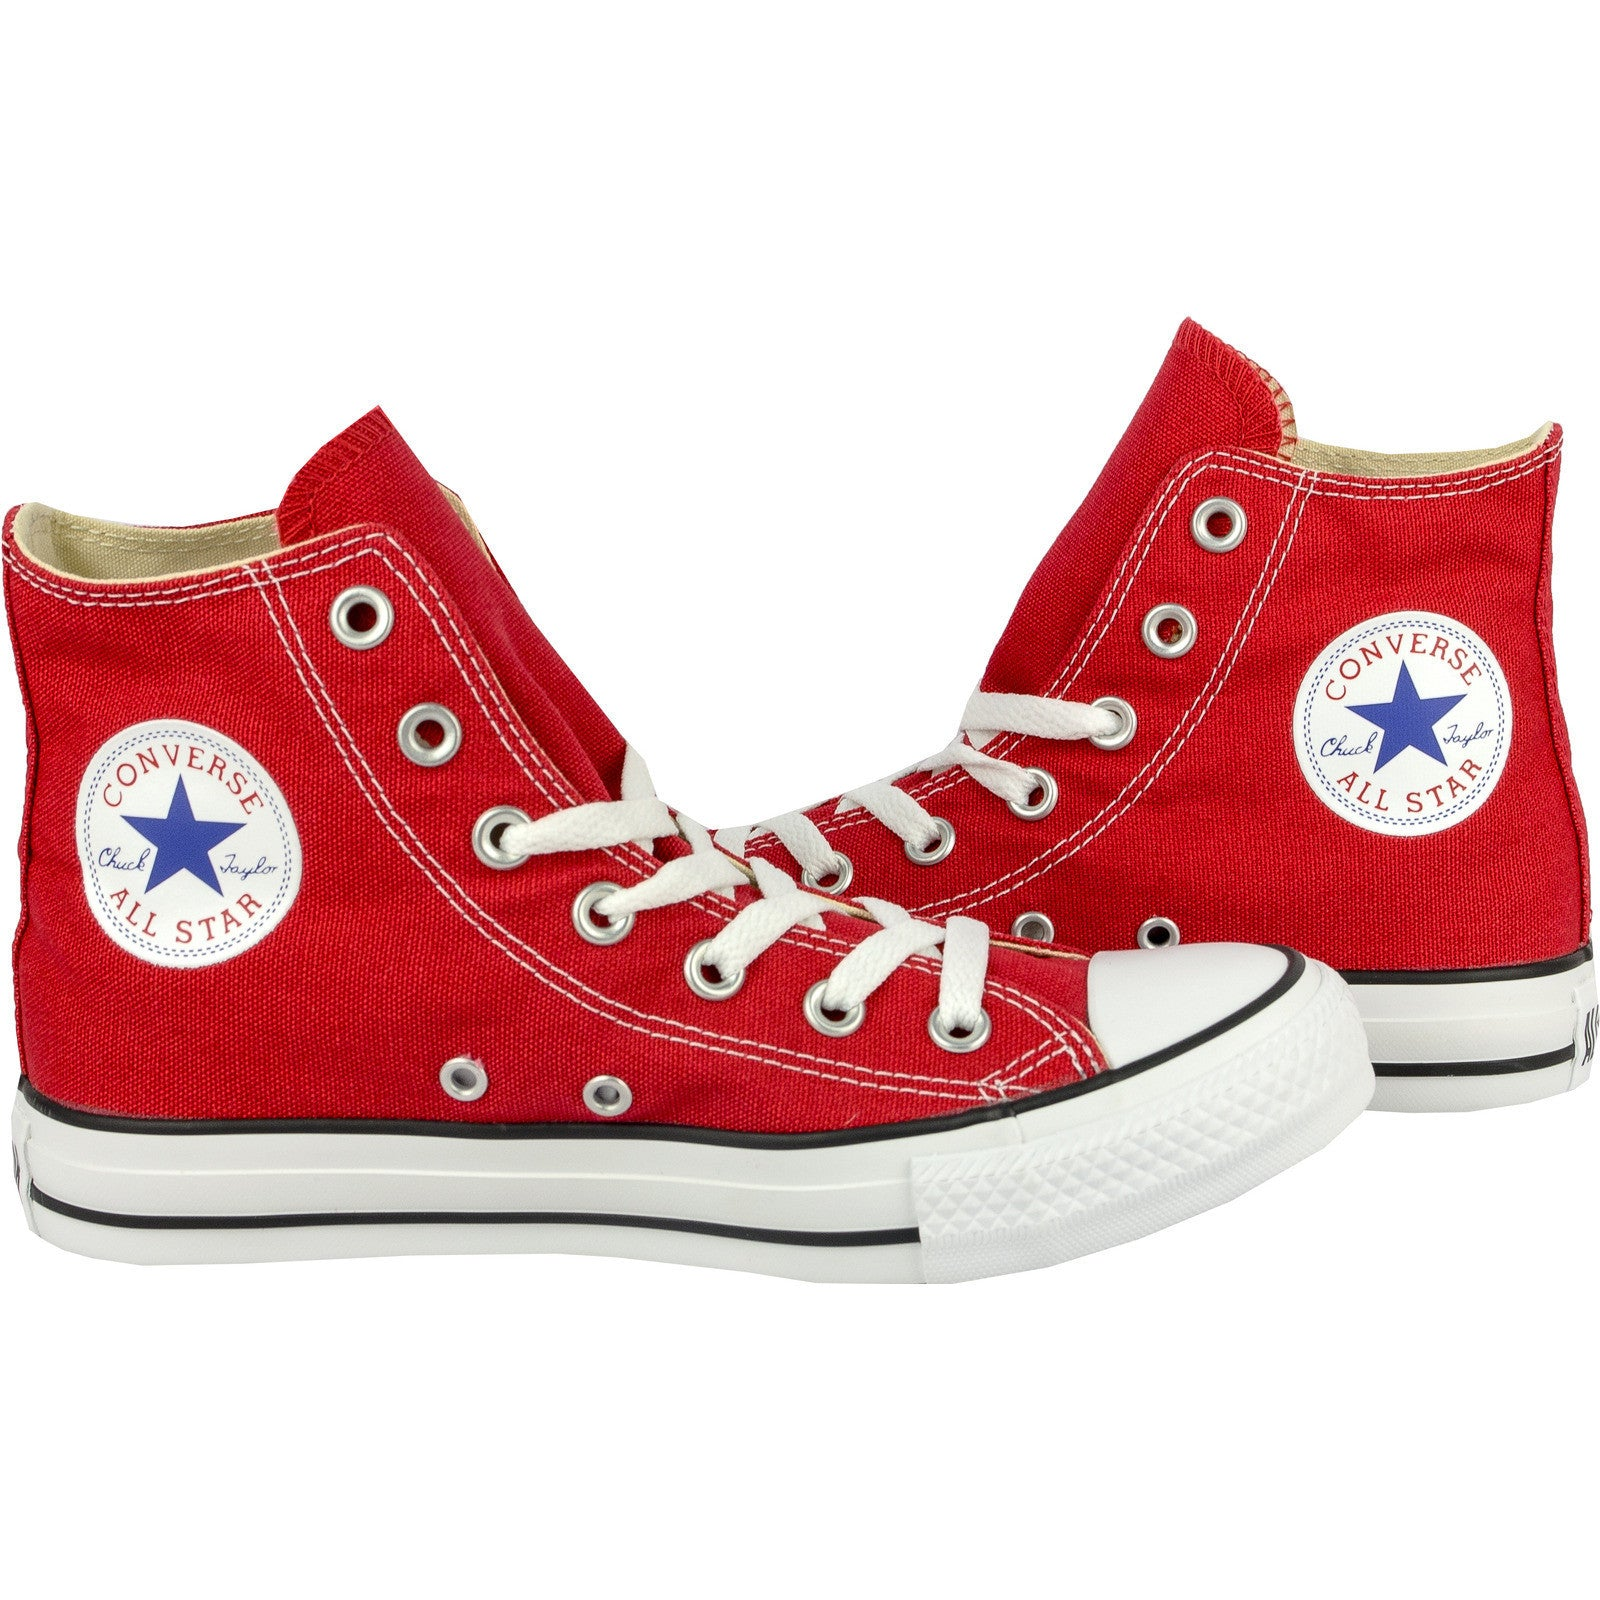 5d03c50496e0 ... Converse Classic Chuck Taylor All Star Red HI High M9621C Trainer  Sneaker NEW ...